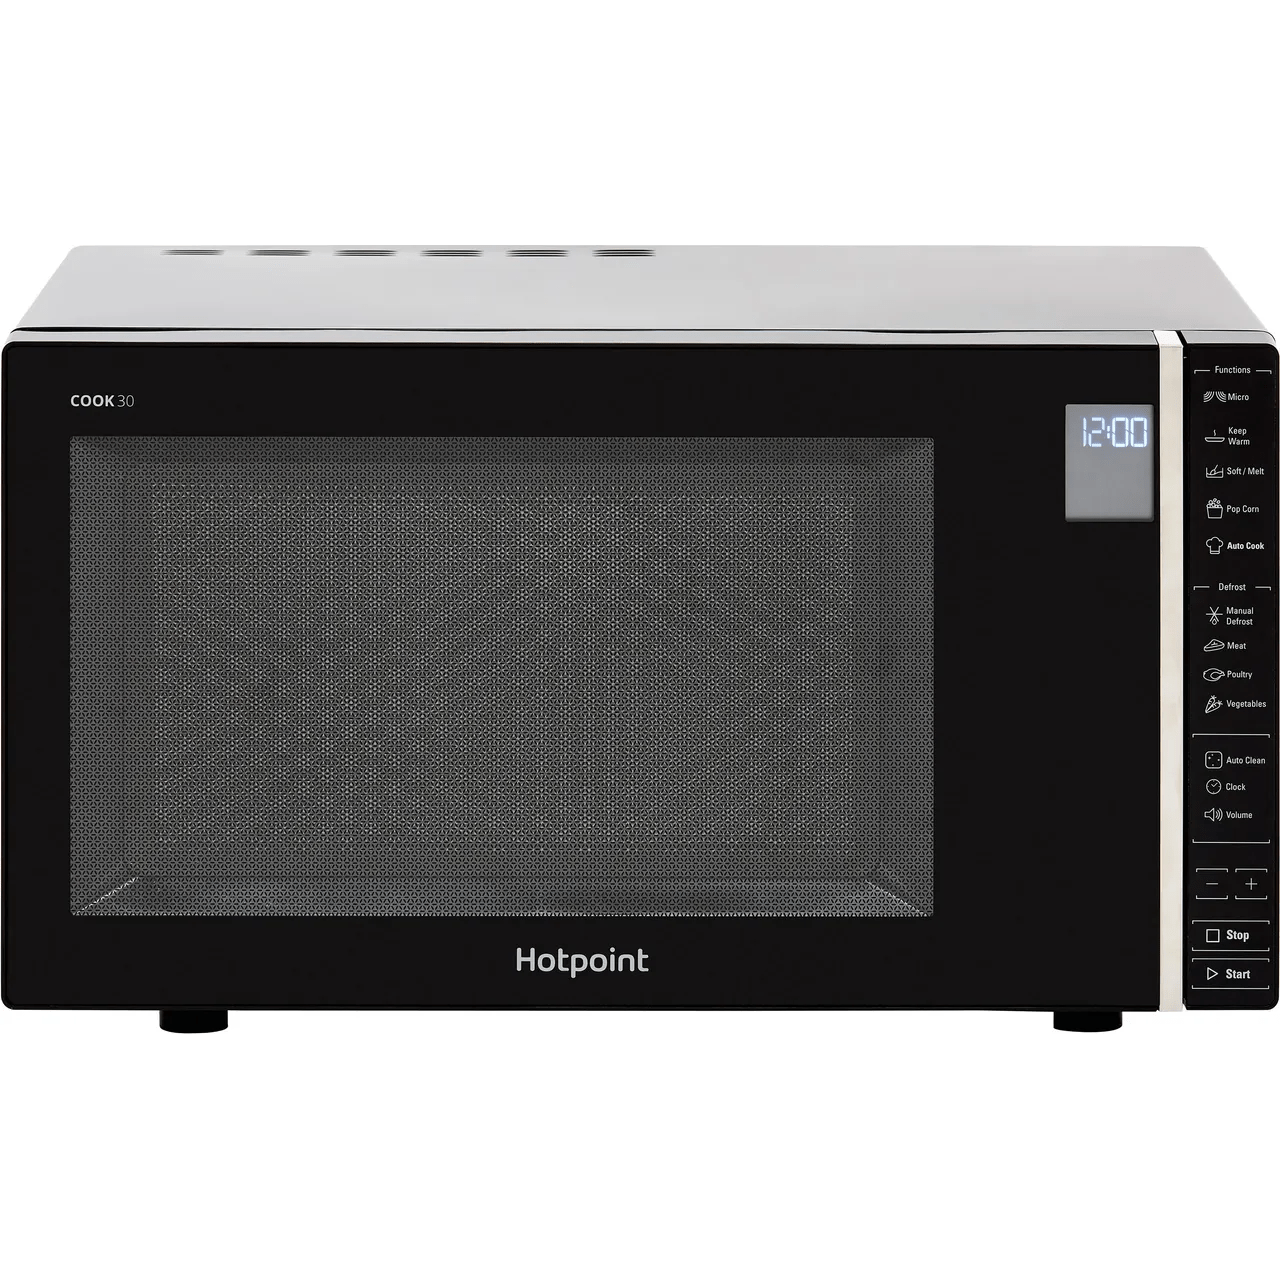 hotpoint cook 30 mwh301b 30 litre microwave black